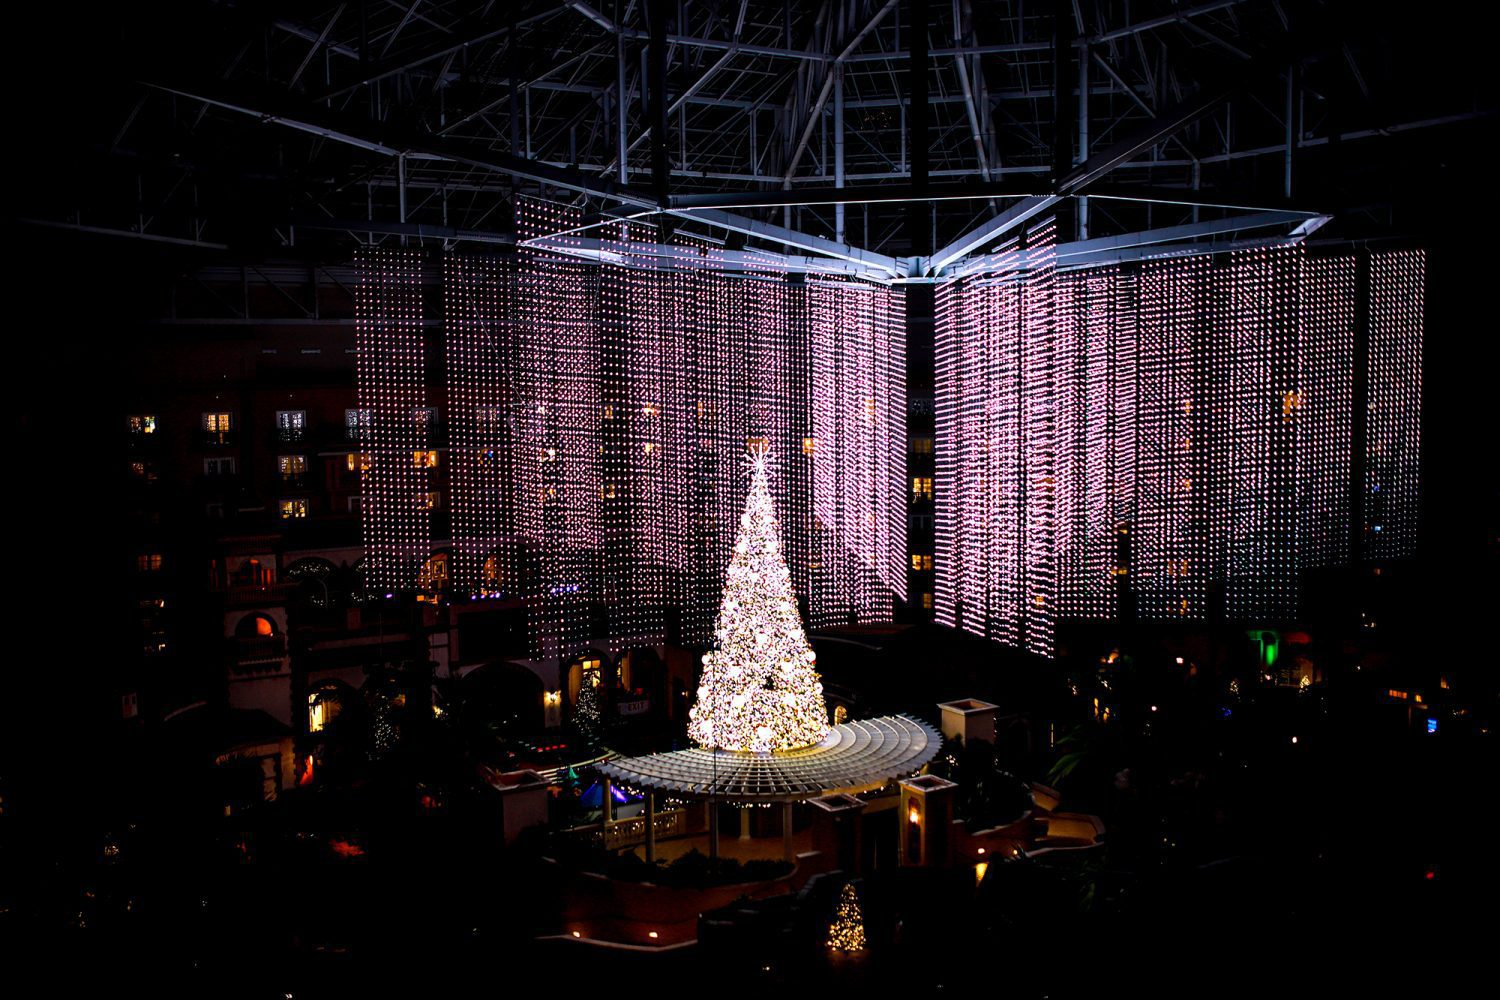 Light show at Gaylord Palms